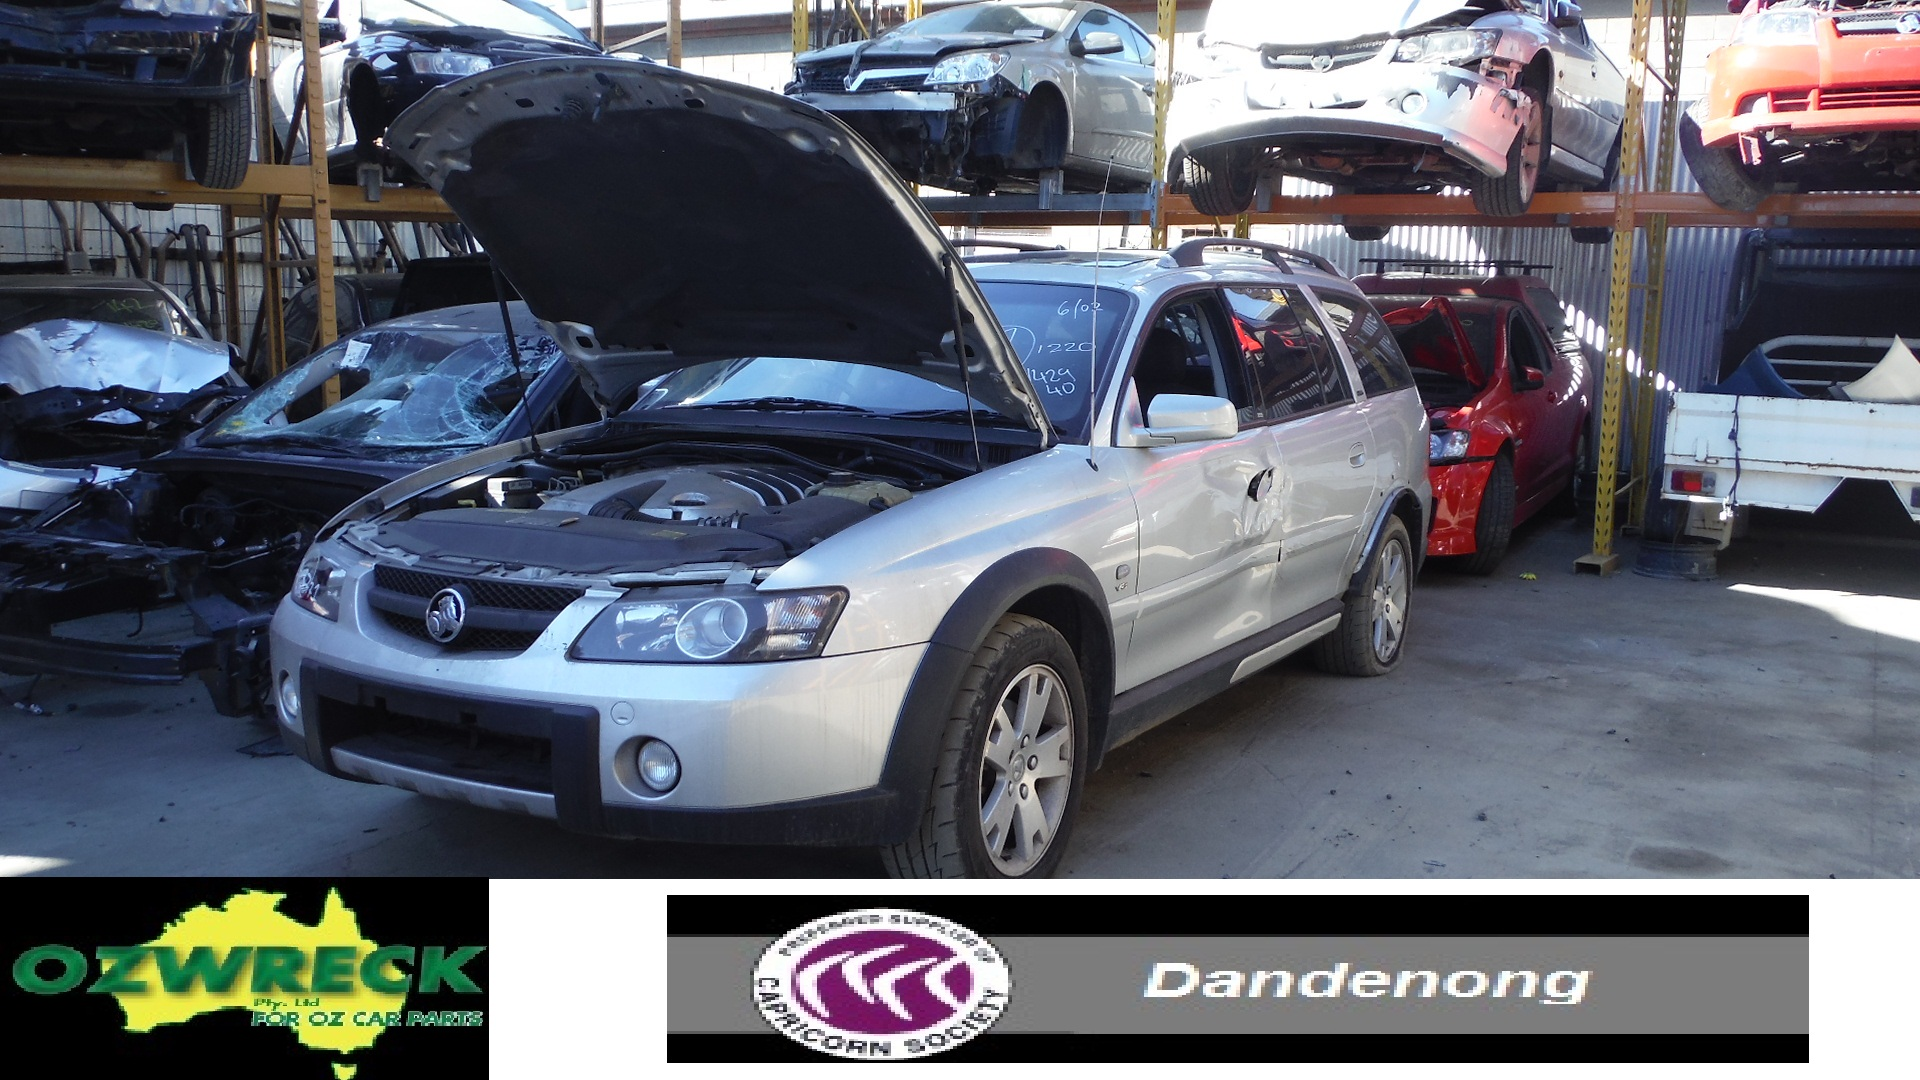 2004 HOLDEN ADVENTRA LX8 5.7L V8 WAGON WRECKING WHOLE VEHICLE W/NUT ONLY